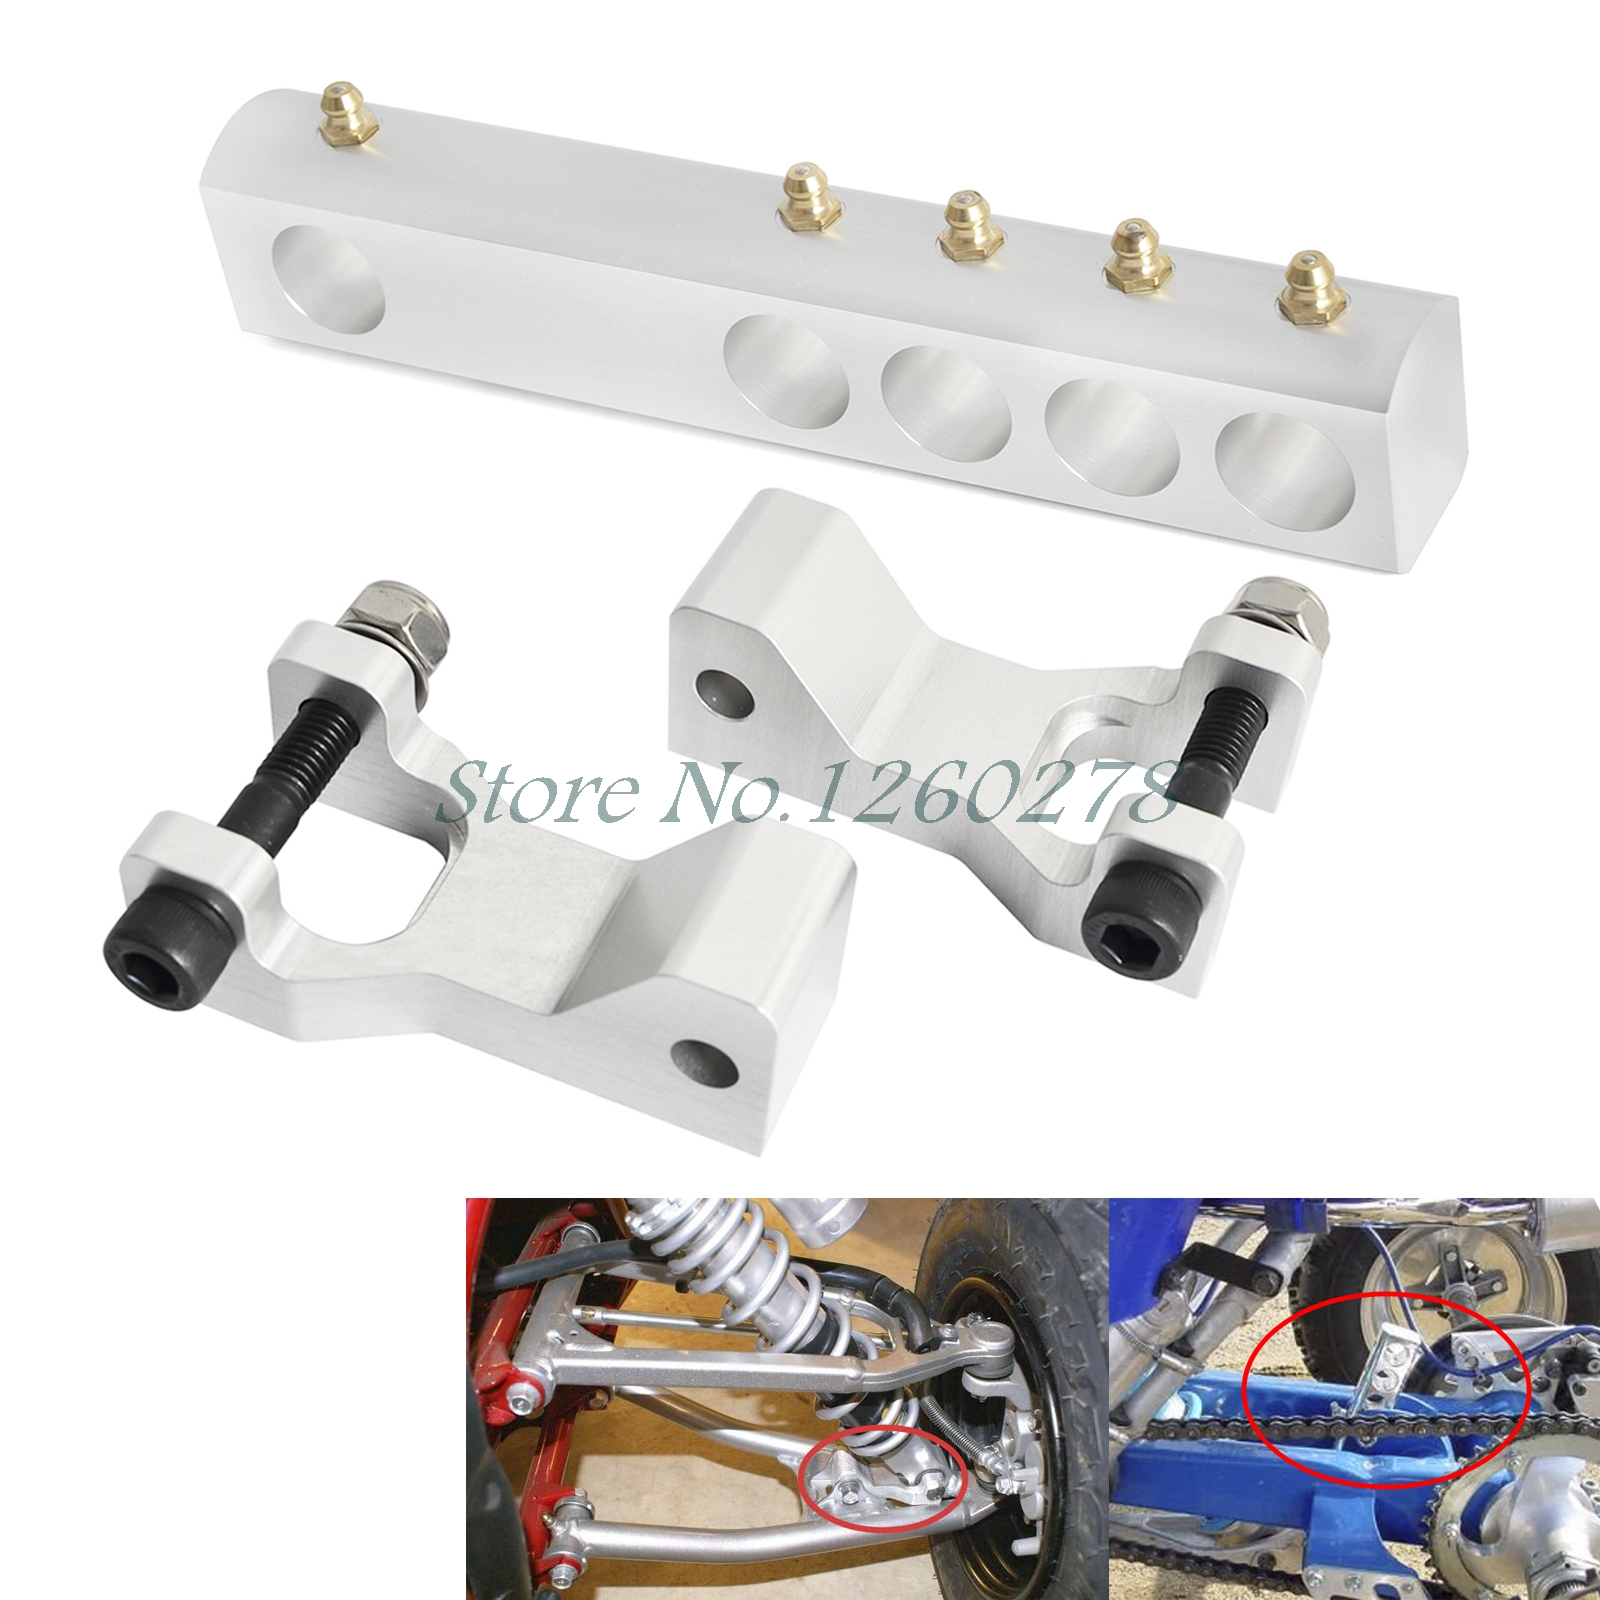 Sliver Front Rear Lowering Kit For Yamaha Warrior 350 YFM350X 1987-2004 Banshee 350 YFZ350 1987-2008 Accessories